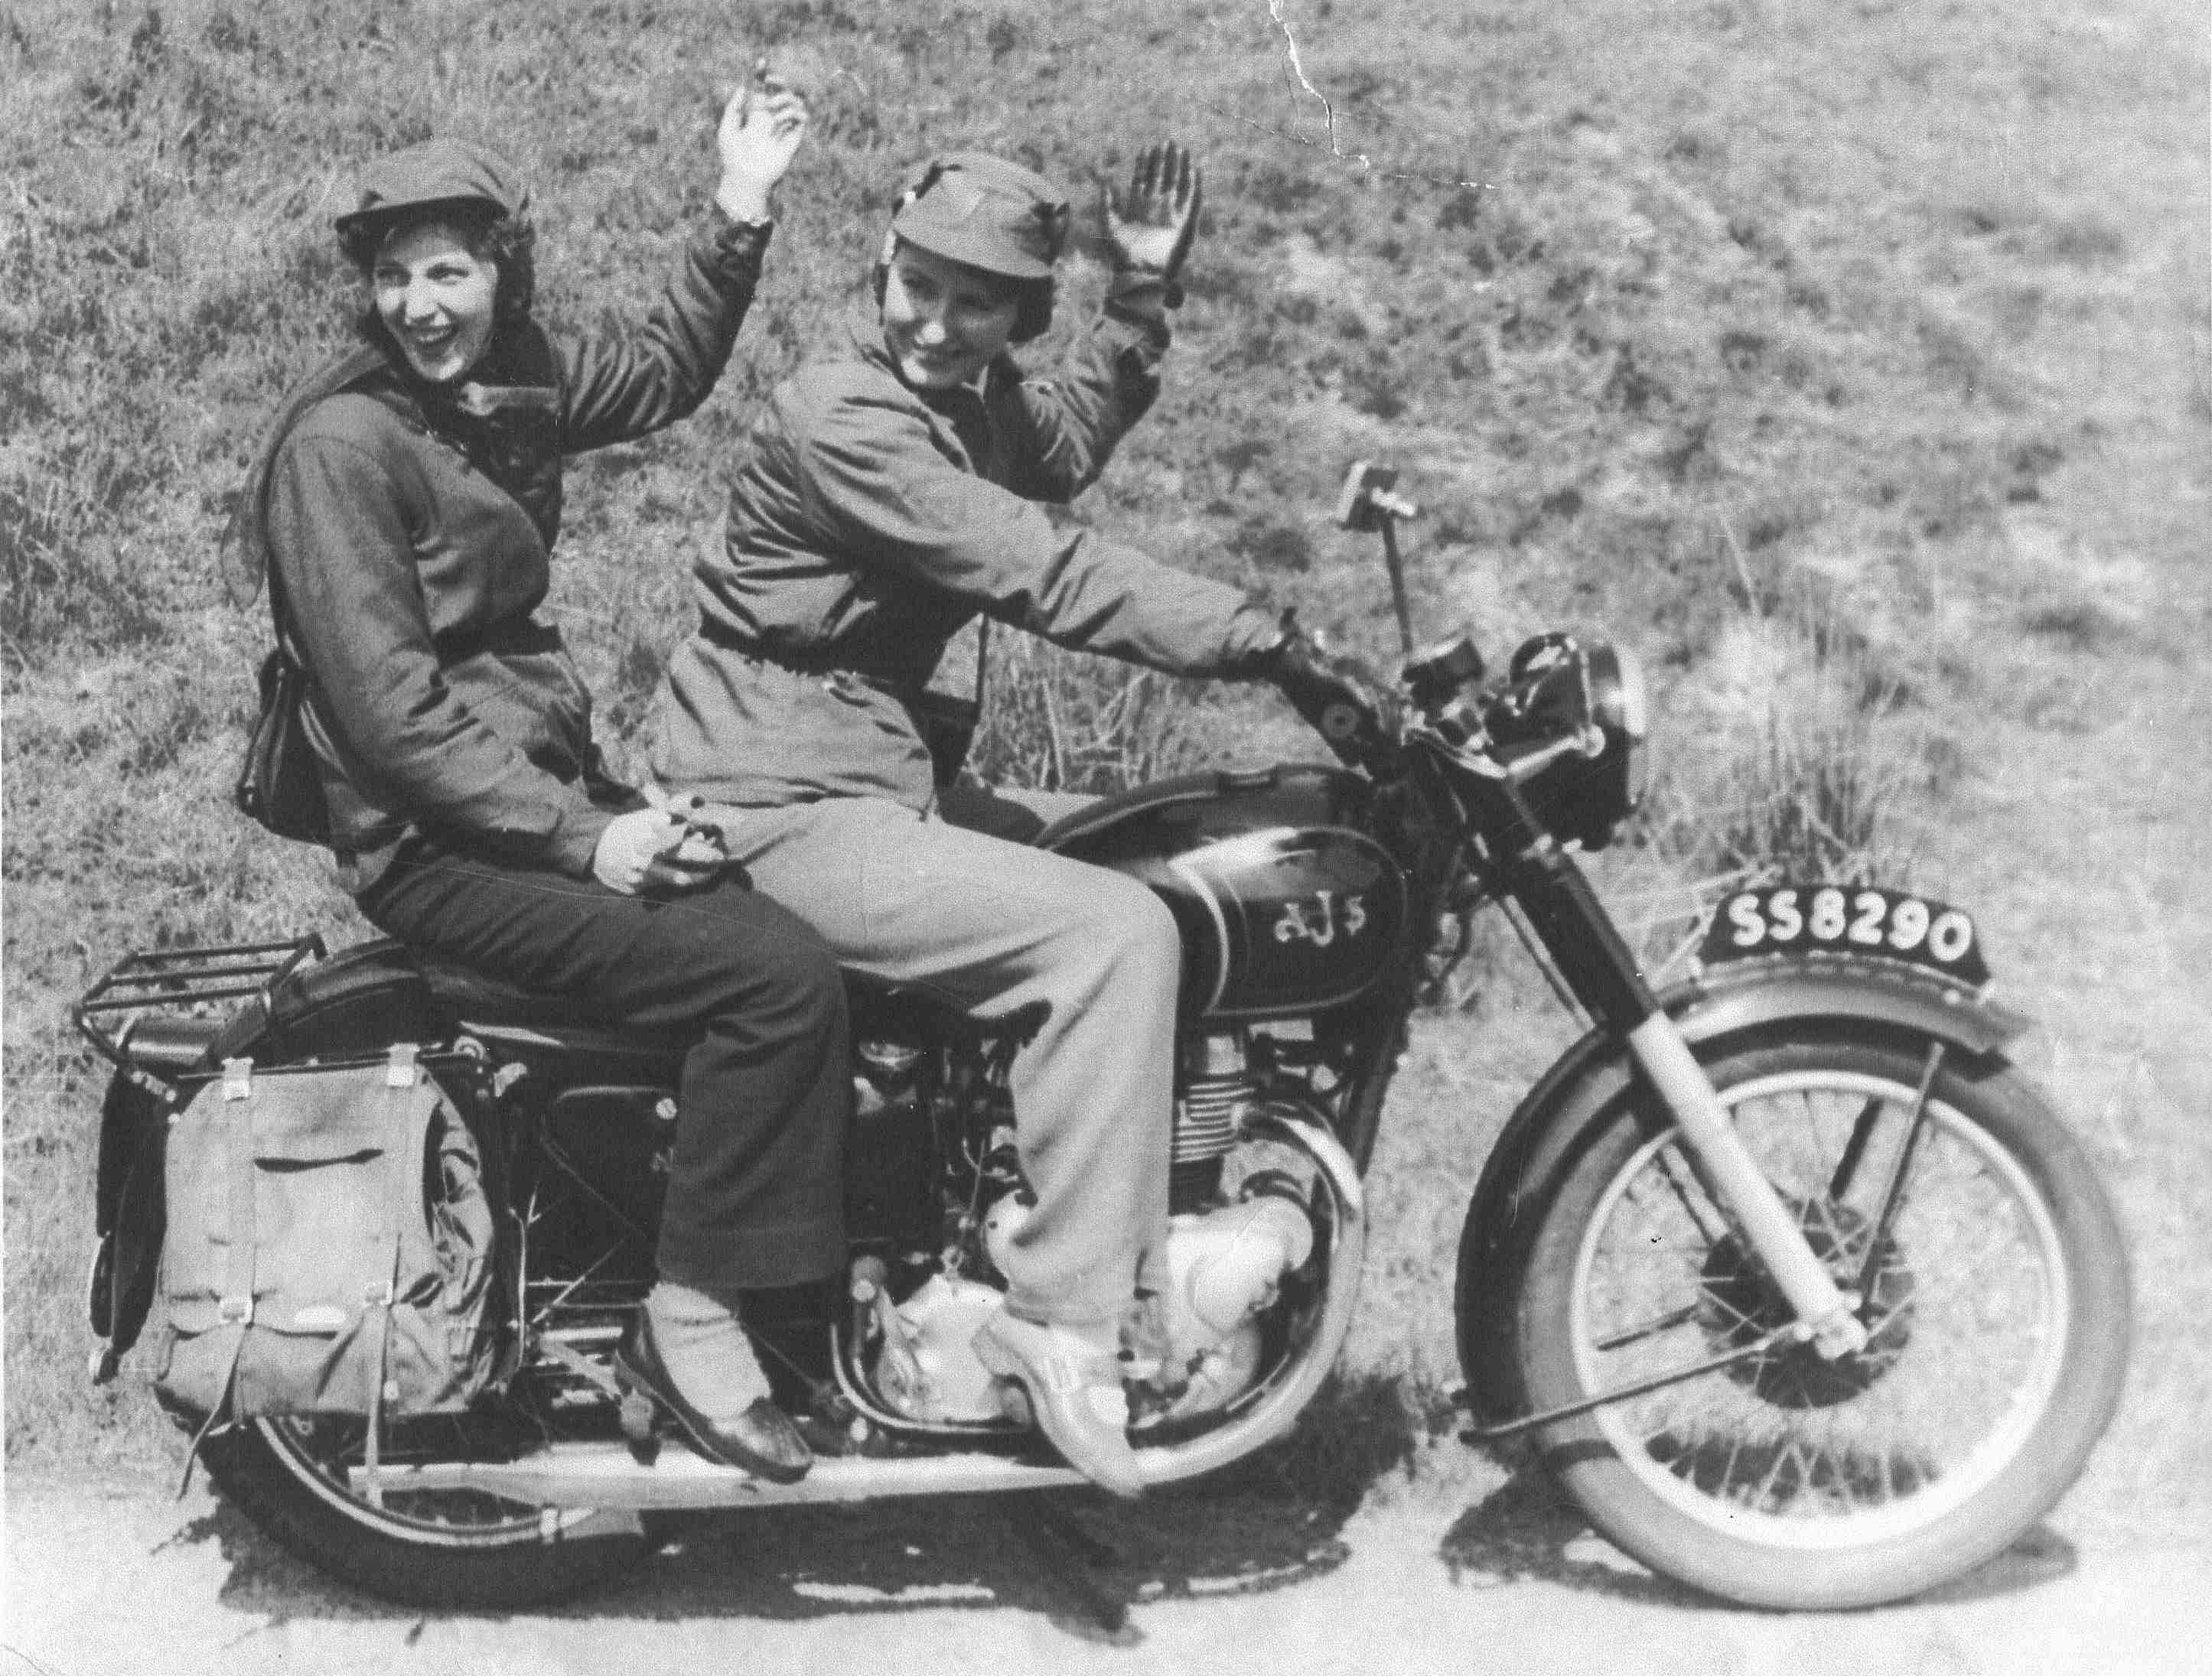 Two Women Riding Motorbike 1960s